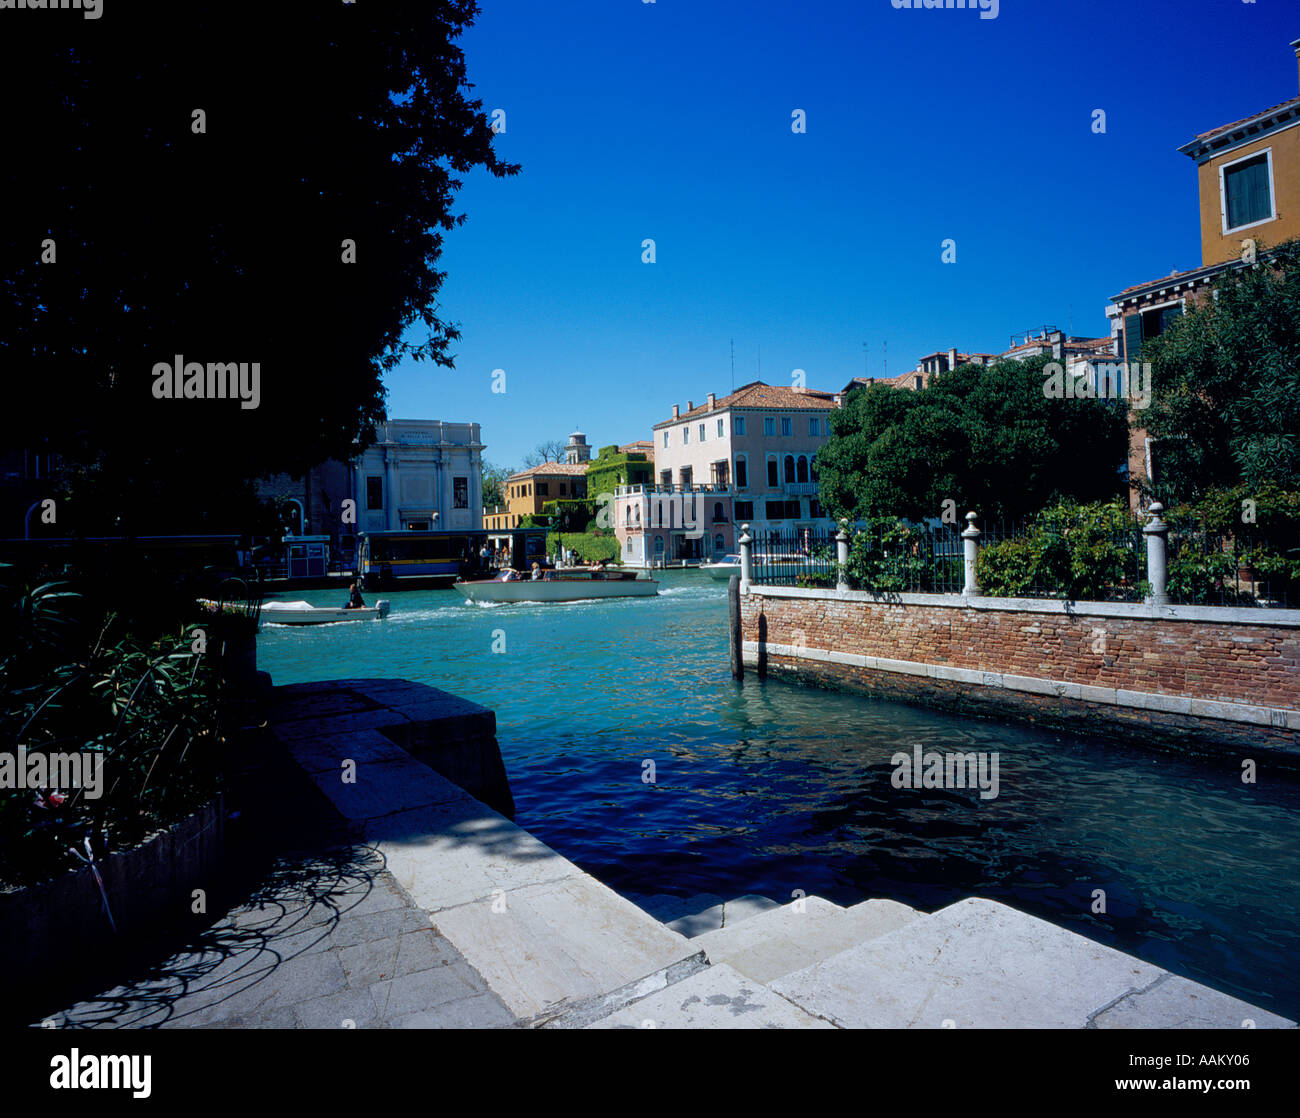 looking at Canal Grande at Accademia, Venice, UNESCO World Heritage Site, Italy, Europe. Photo by Willy Matheisl - Stock Image